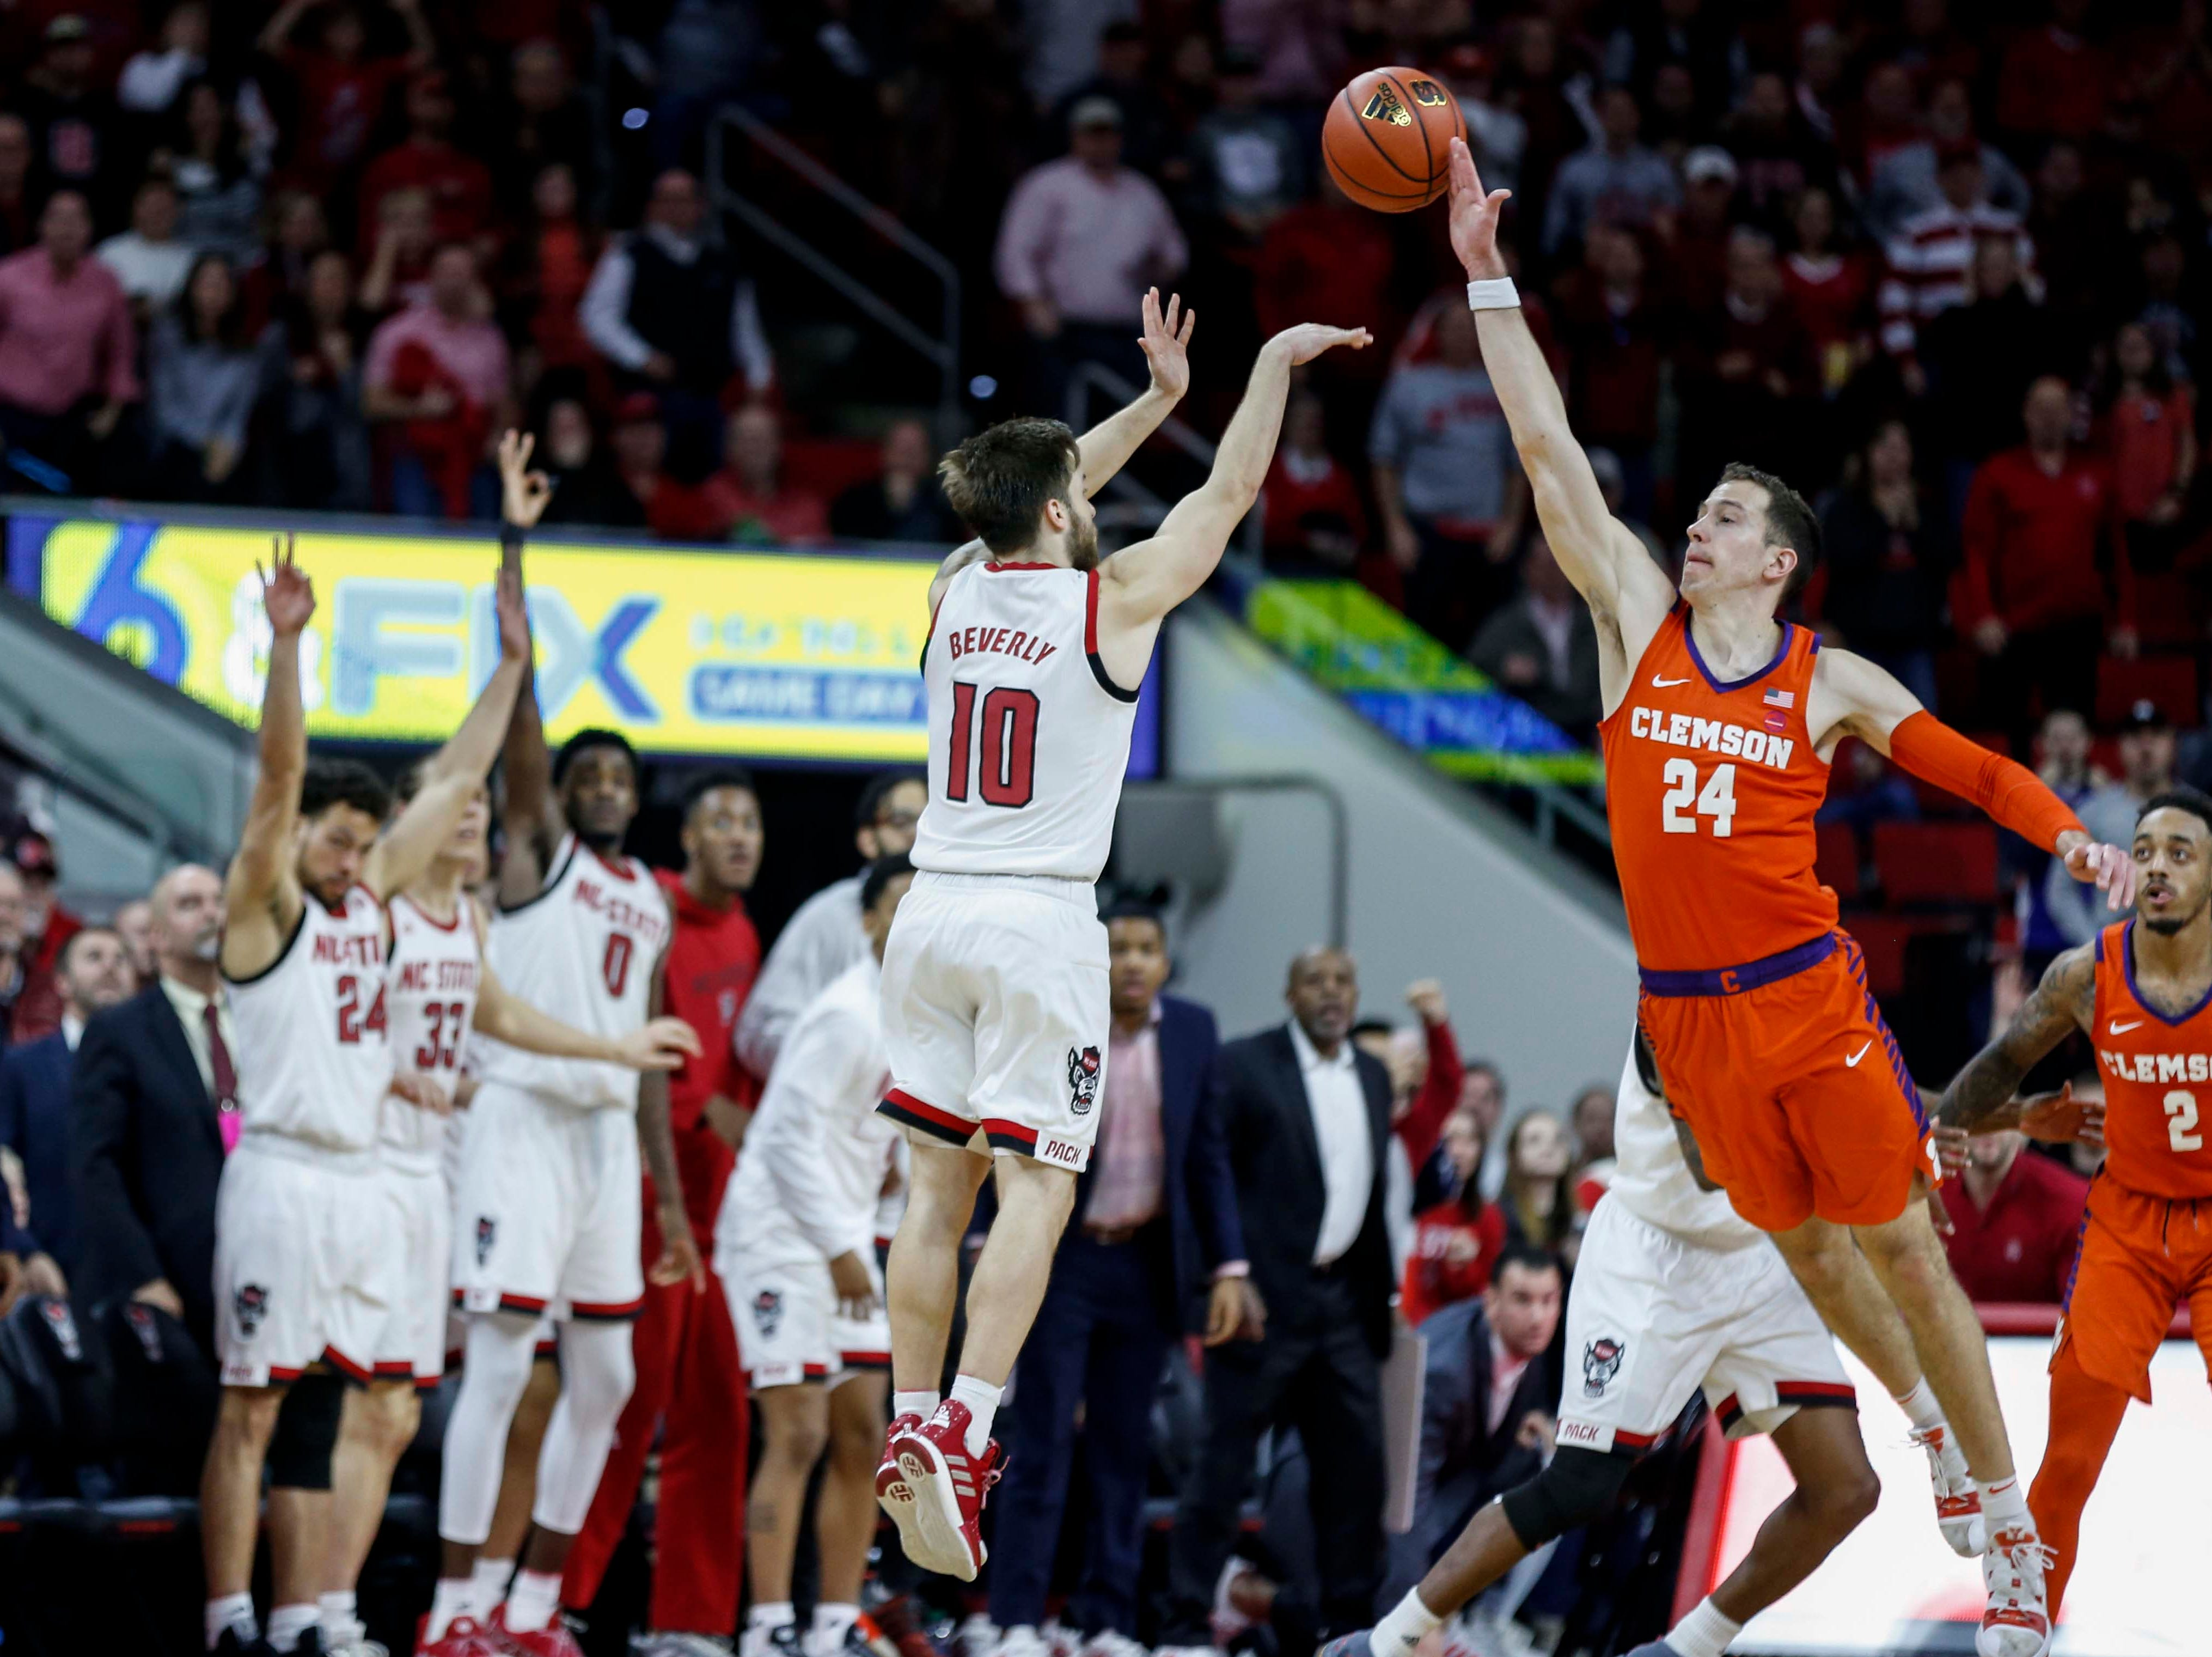 Jan 26, 2019; Raleigh, NC, USA; North Carolina State Wolfpack guard Braxton Beverly (10) shoots over a three-pointer over Clemson Tigers forward David Skara(24) as time expires in the second half at PNC Arena. North Carolina State Wolfpack won 69-67. Mandatory Credit: Nell Redmond-USA TODAY Sports